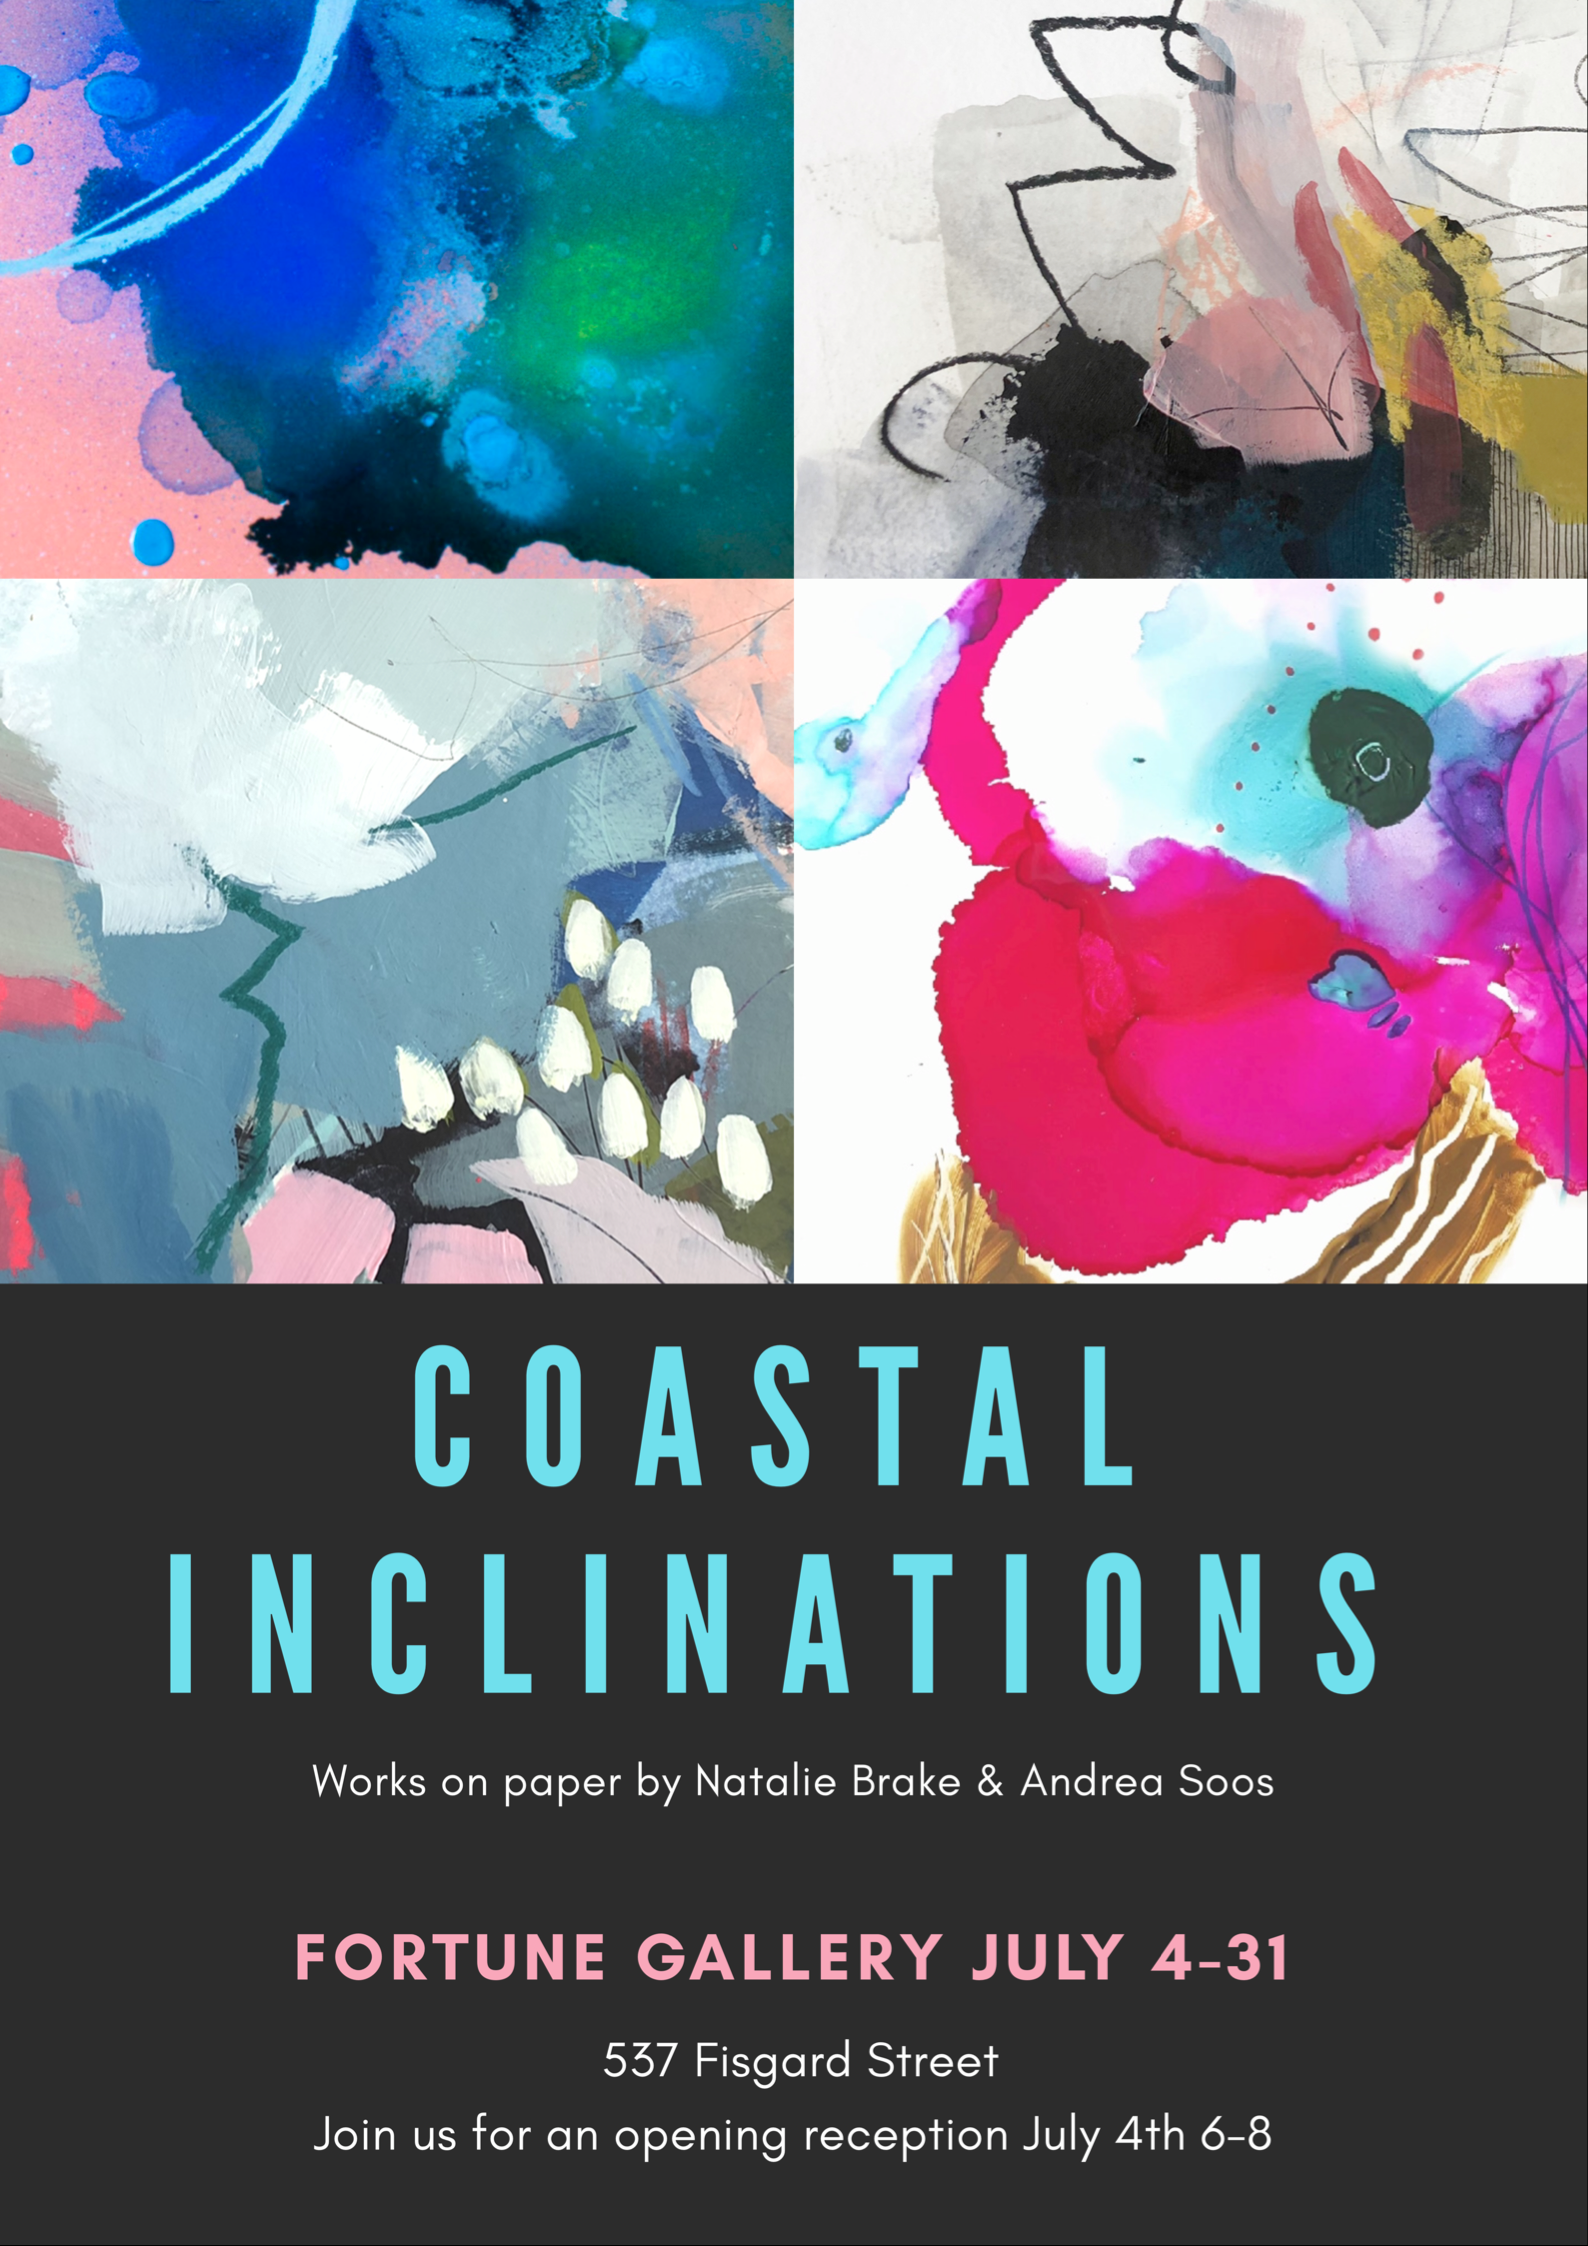 COASTAL INCLINATIONS - New Works on Paper - NATALIE BRAKE & ANDREA SOOSJULY 4 - 31 2019